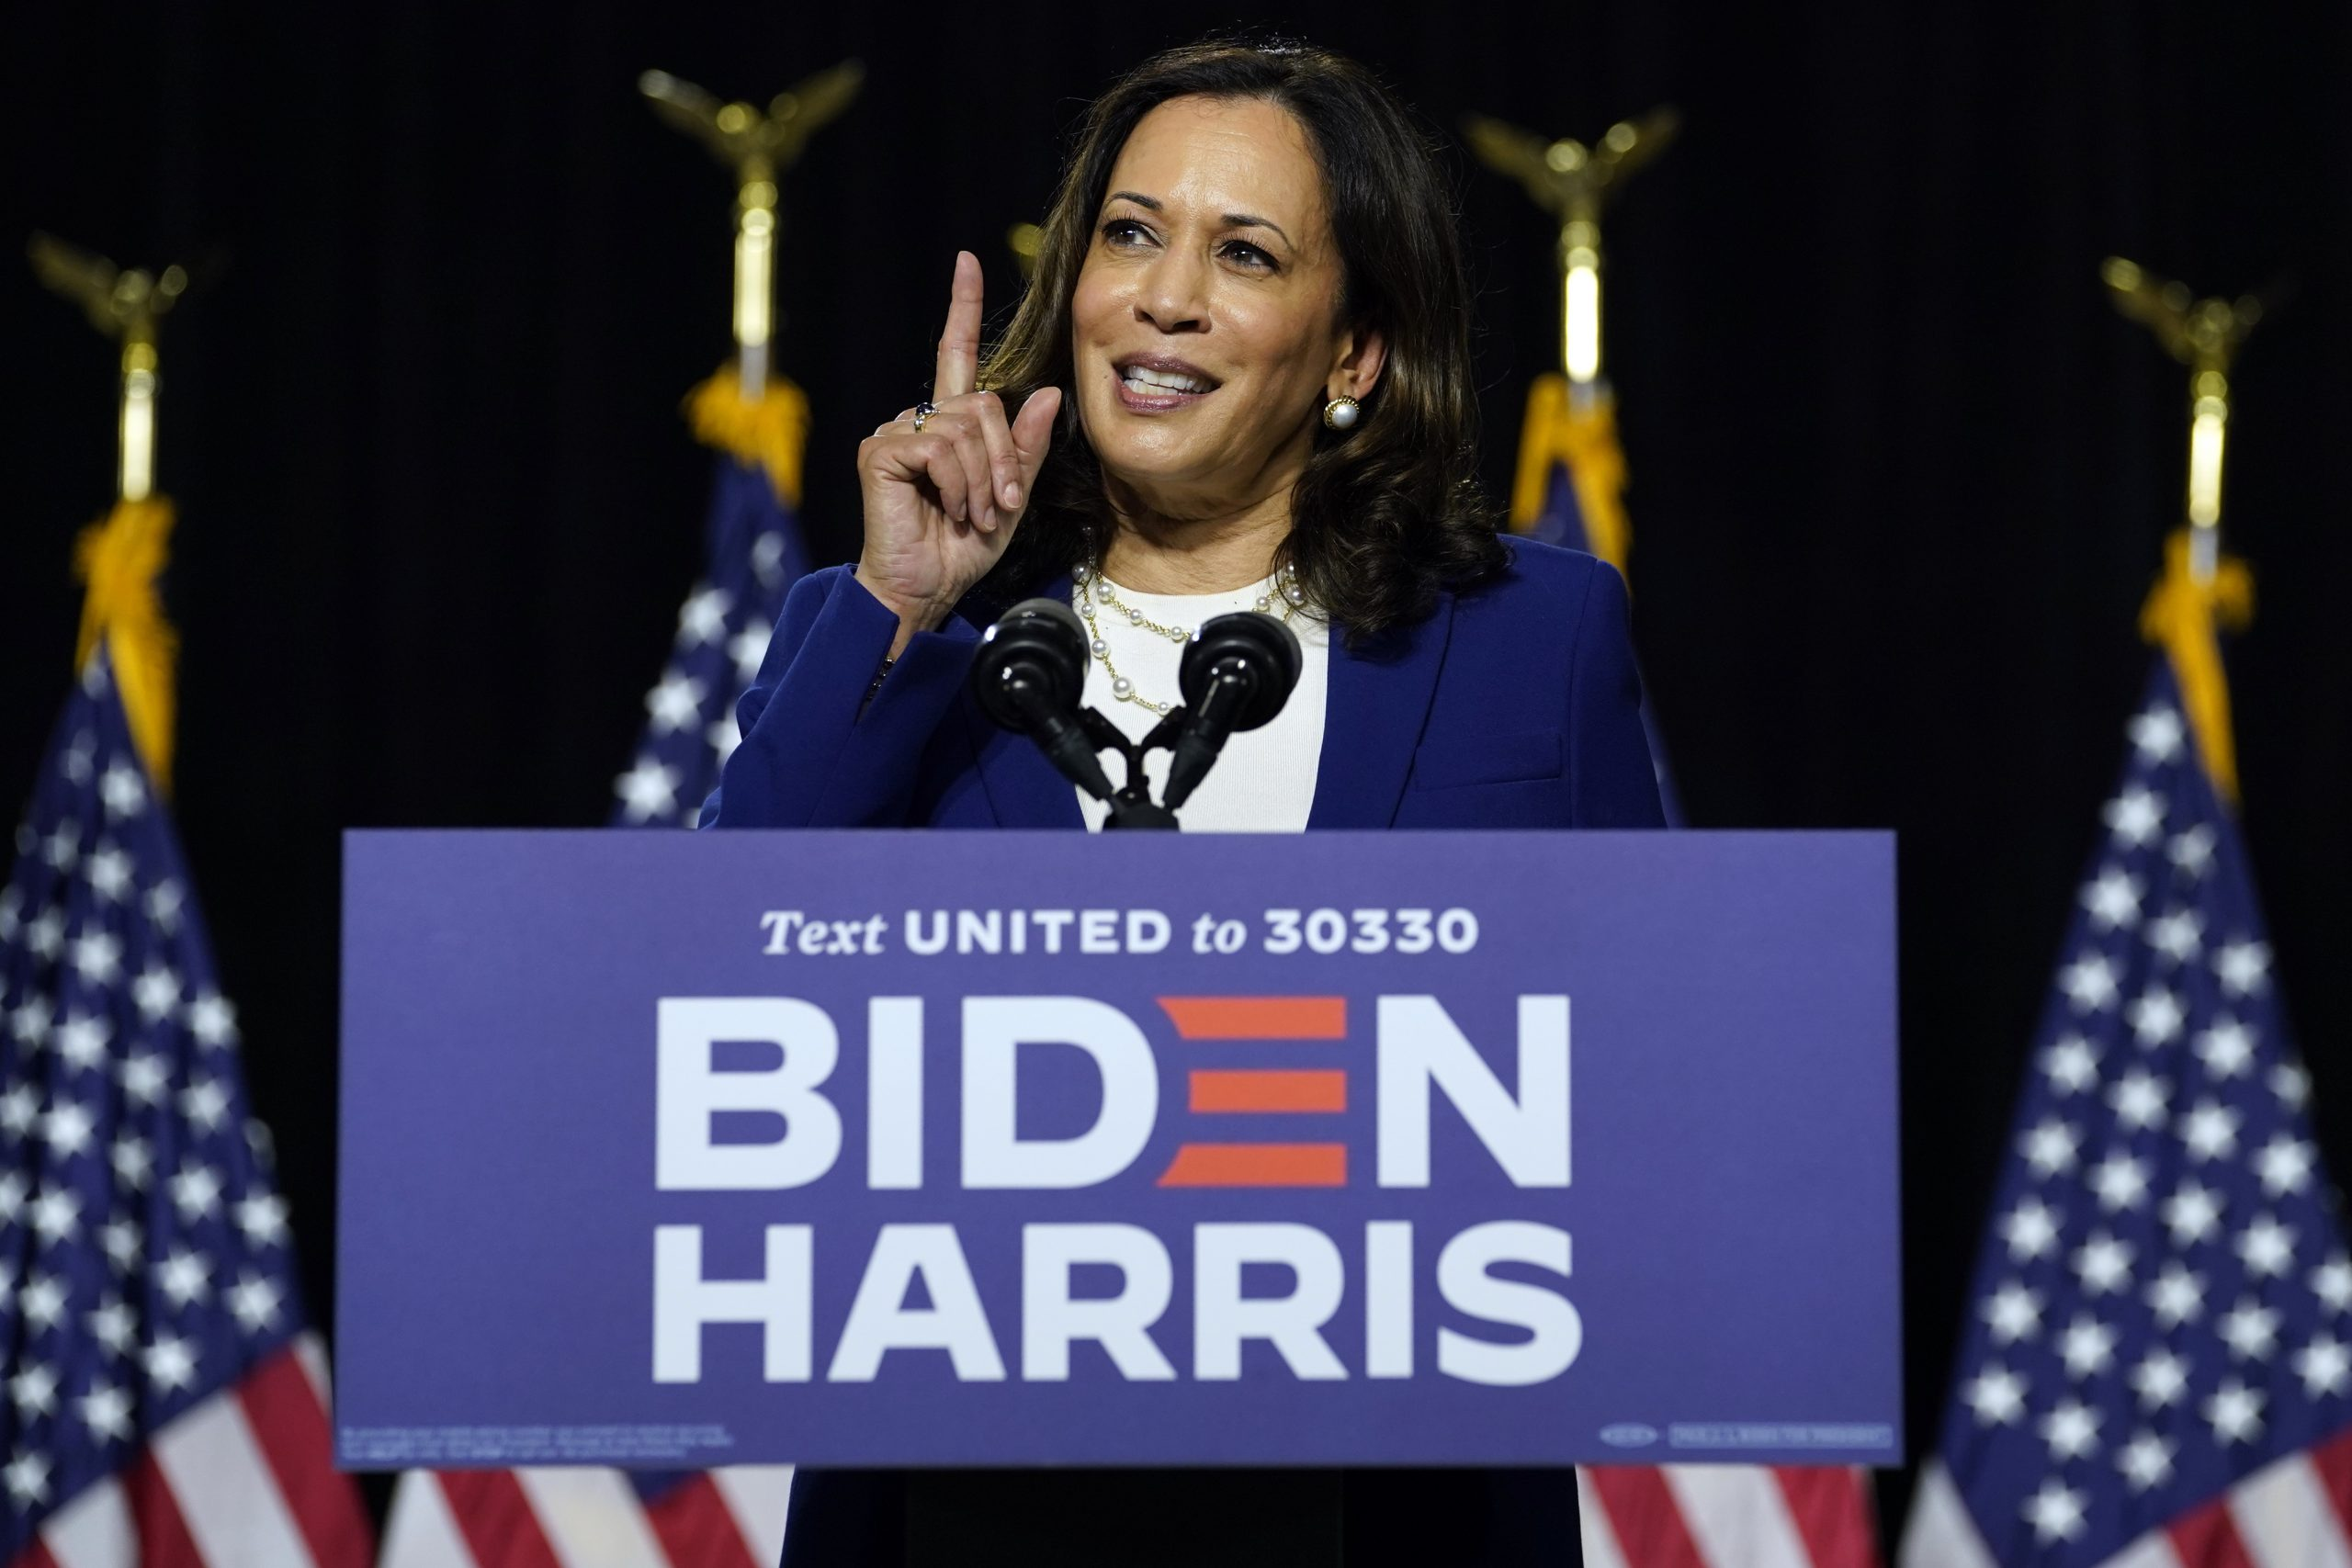 Kamala Harris slams Trump, Barr for denying systemic racism in justice system